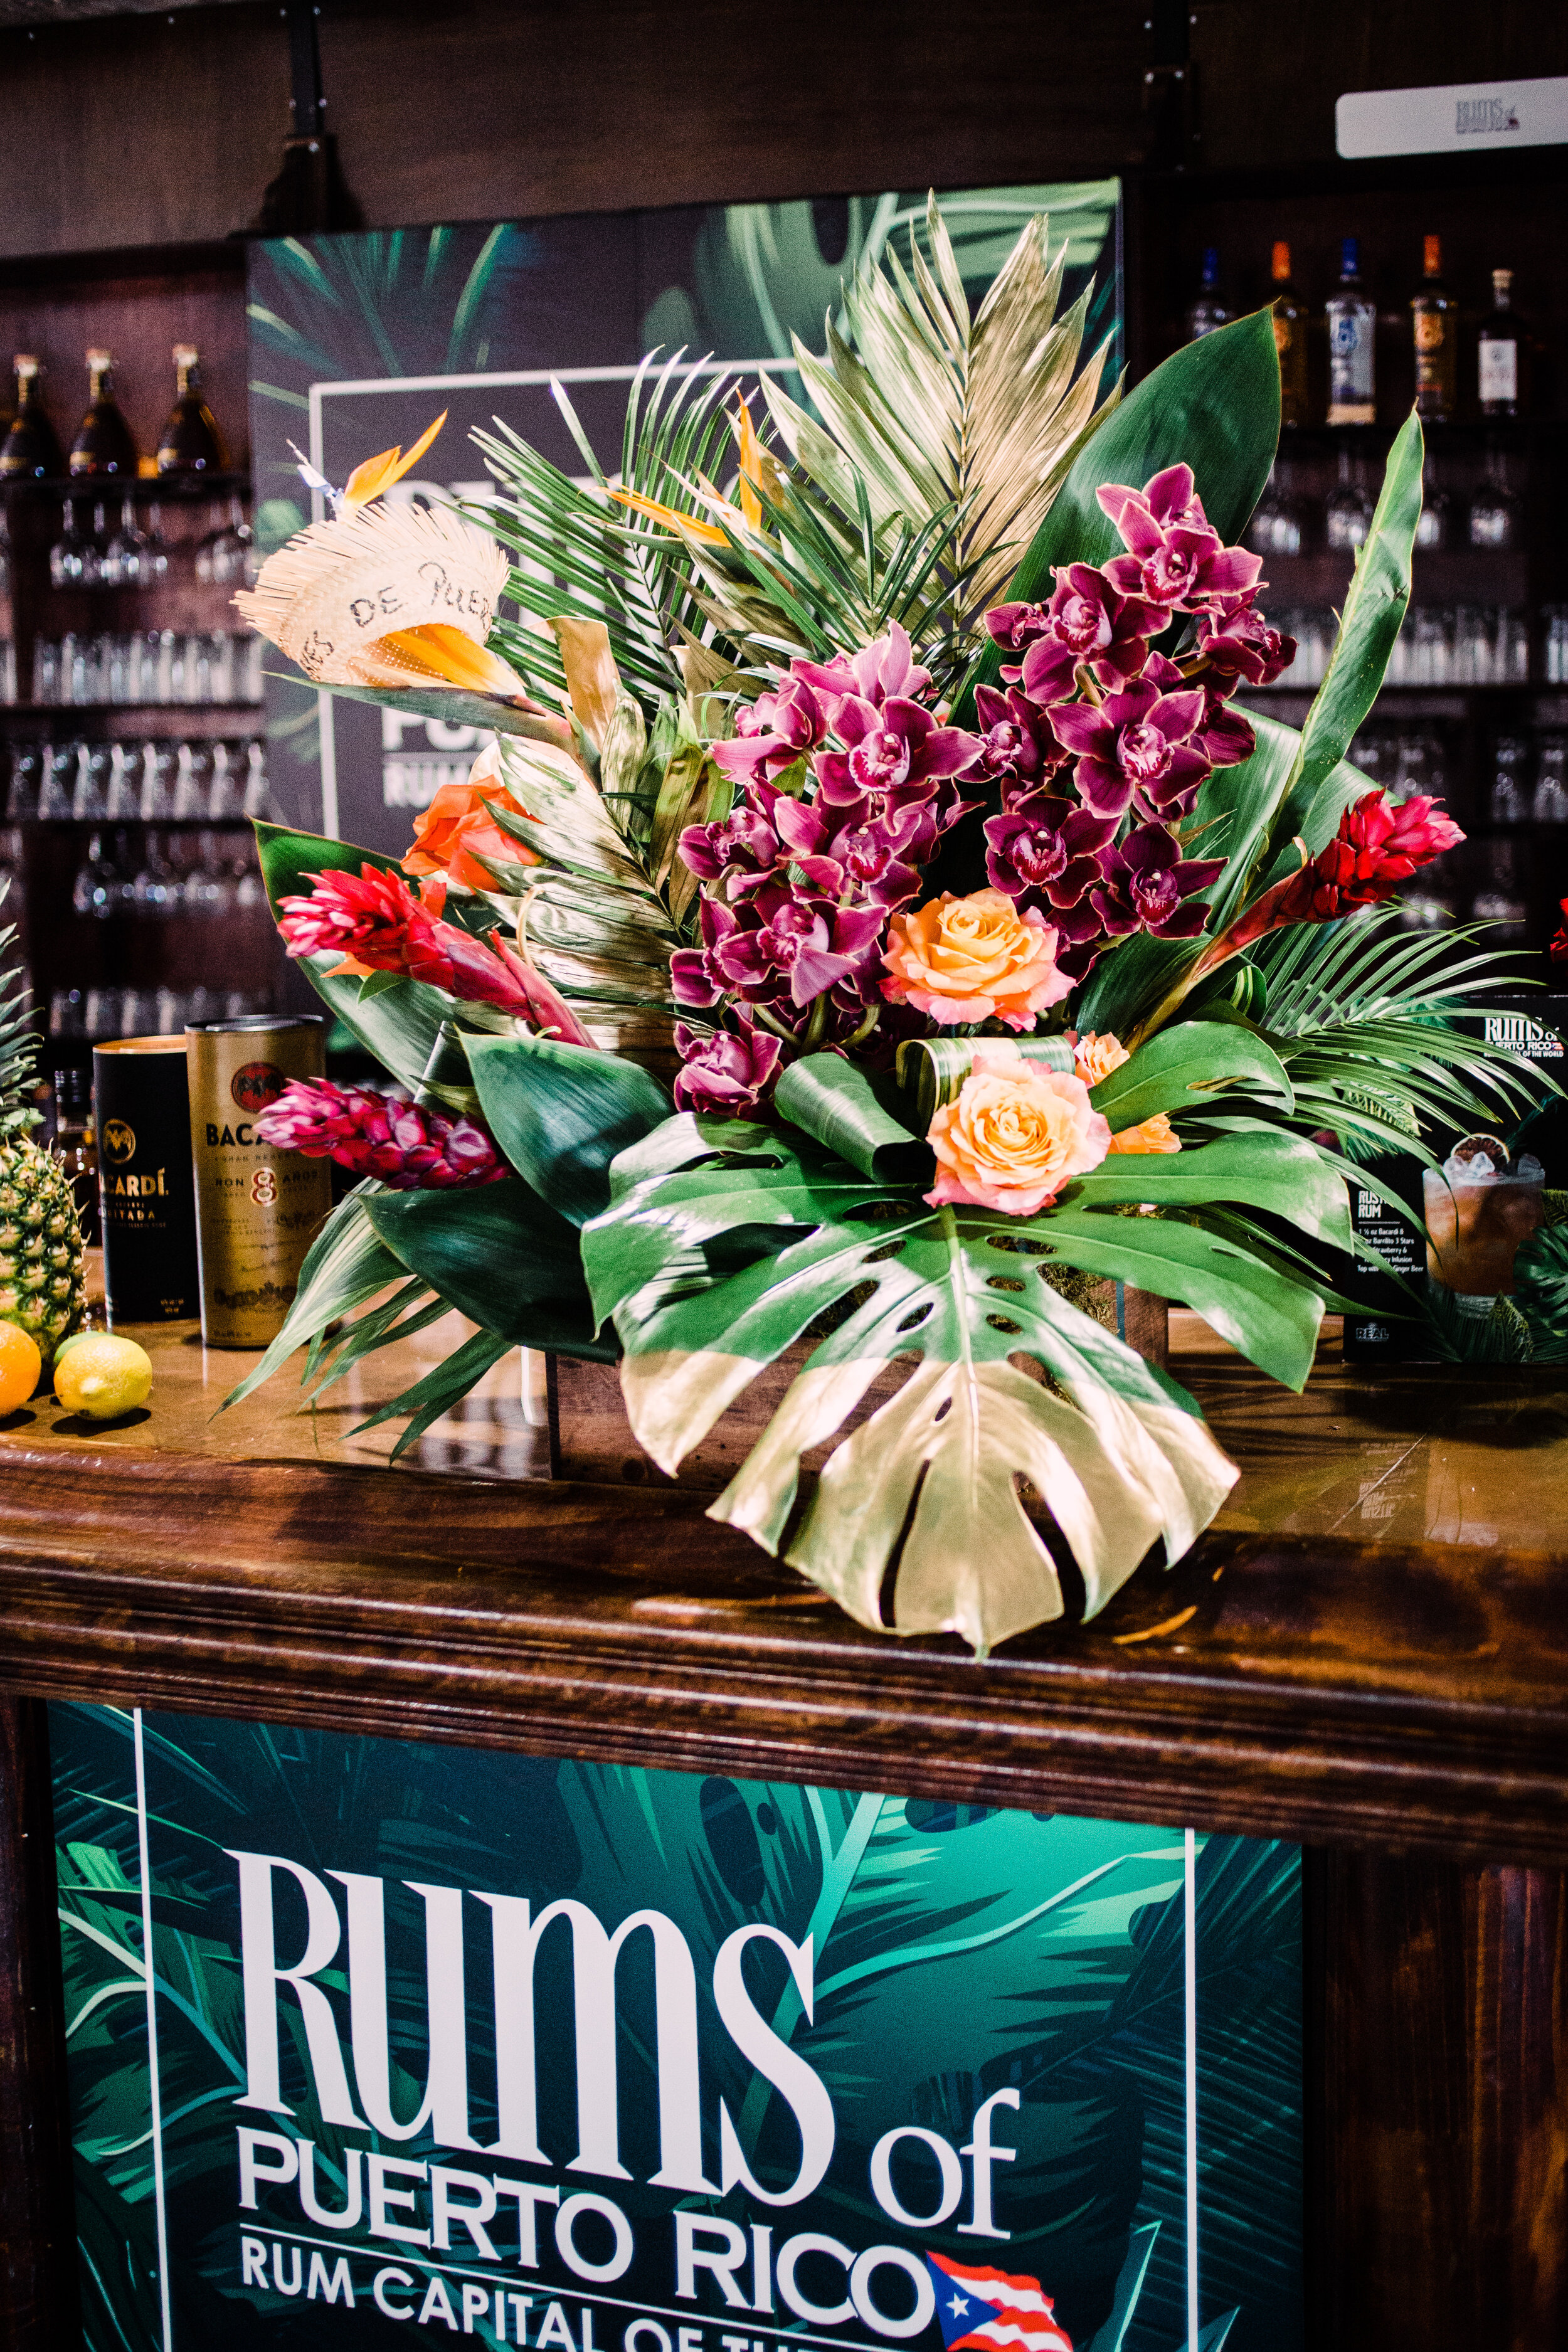 Rum bar with flowers